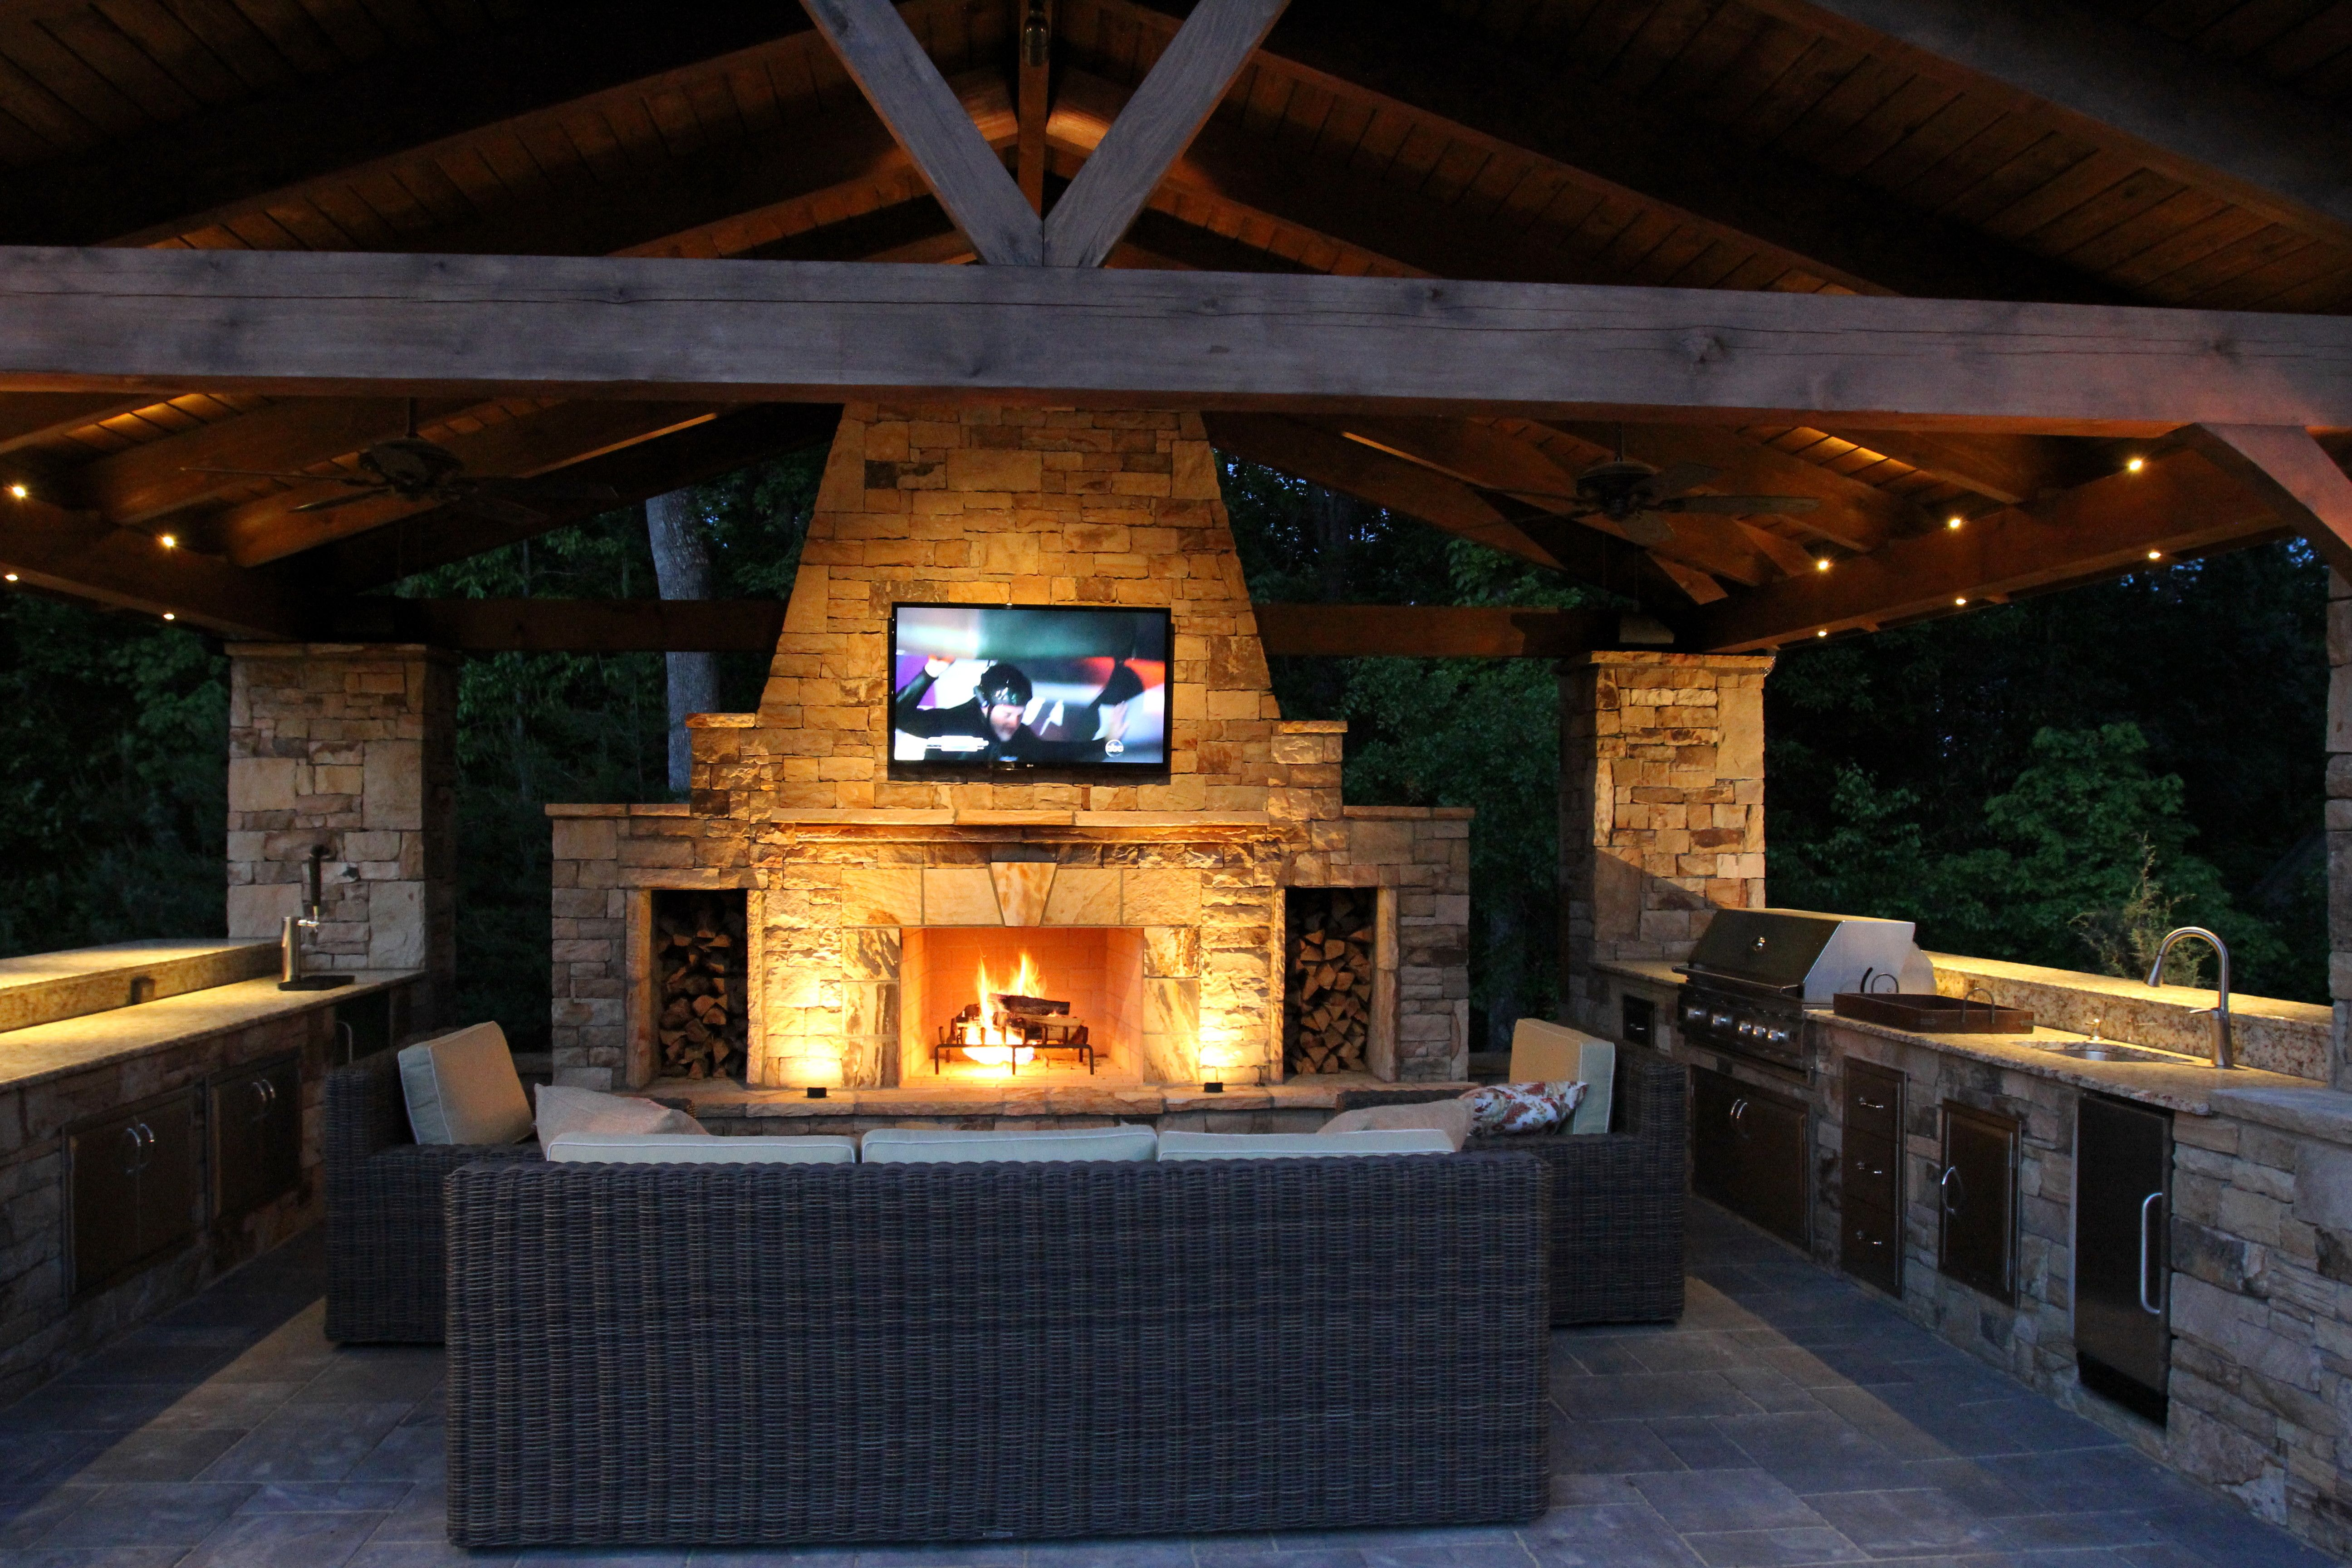 back yard fireplace and barbecue ideas | ... Bbq Outdoor ... on Outdoor Kitchen And Fireplace Ideas id=33266